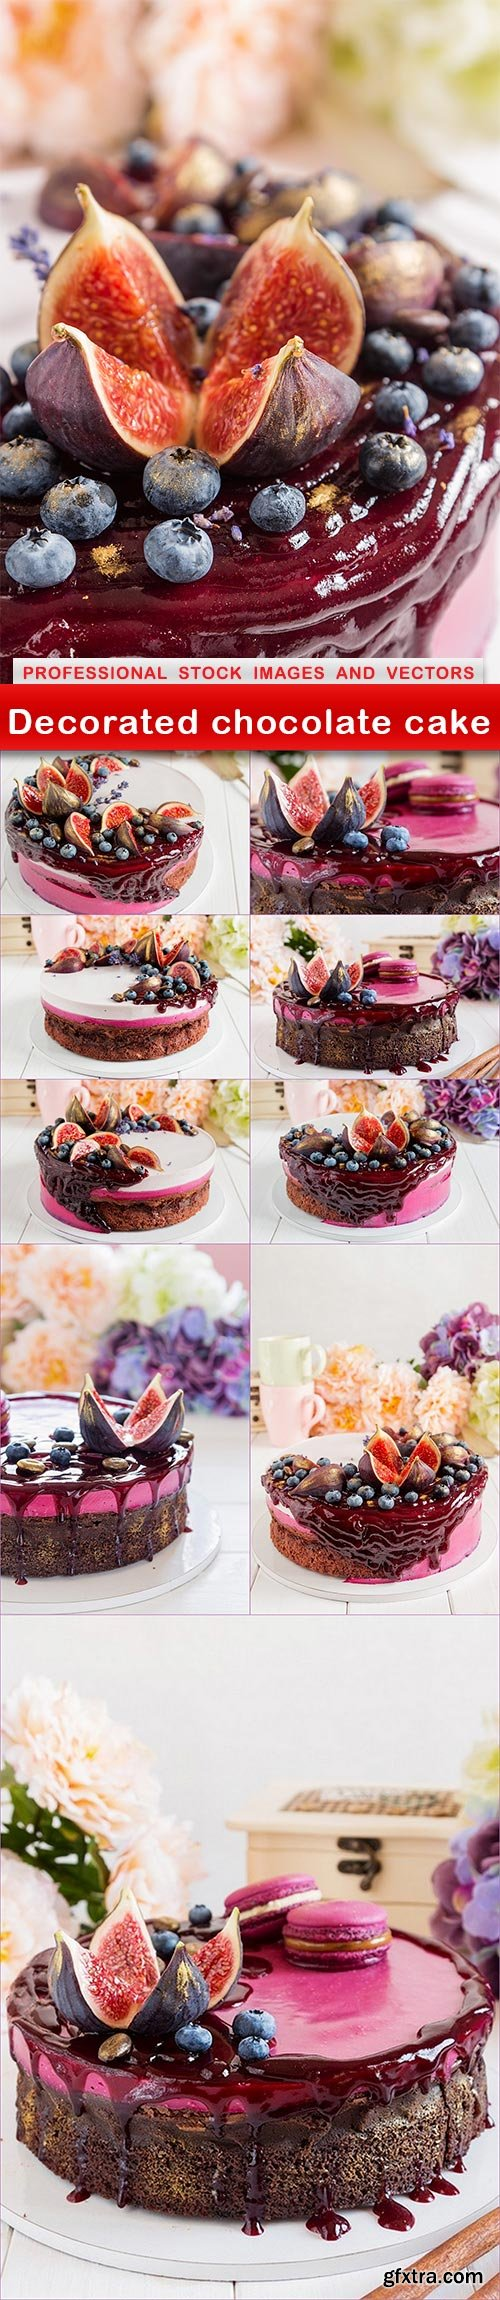 Decorated chocolate cake - 10 UHQ JPEG